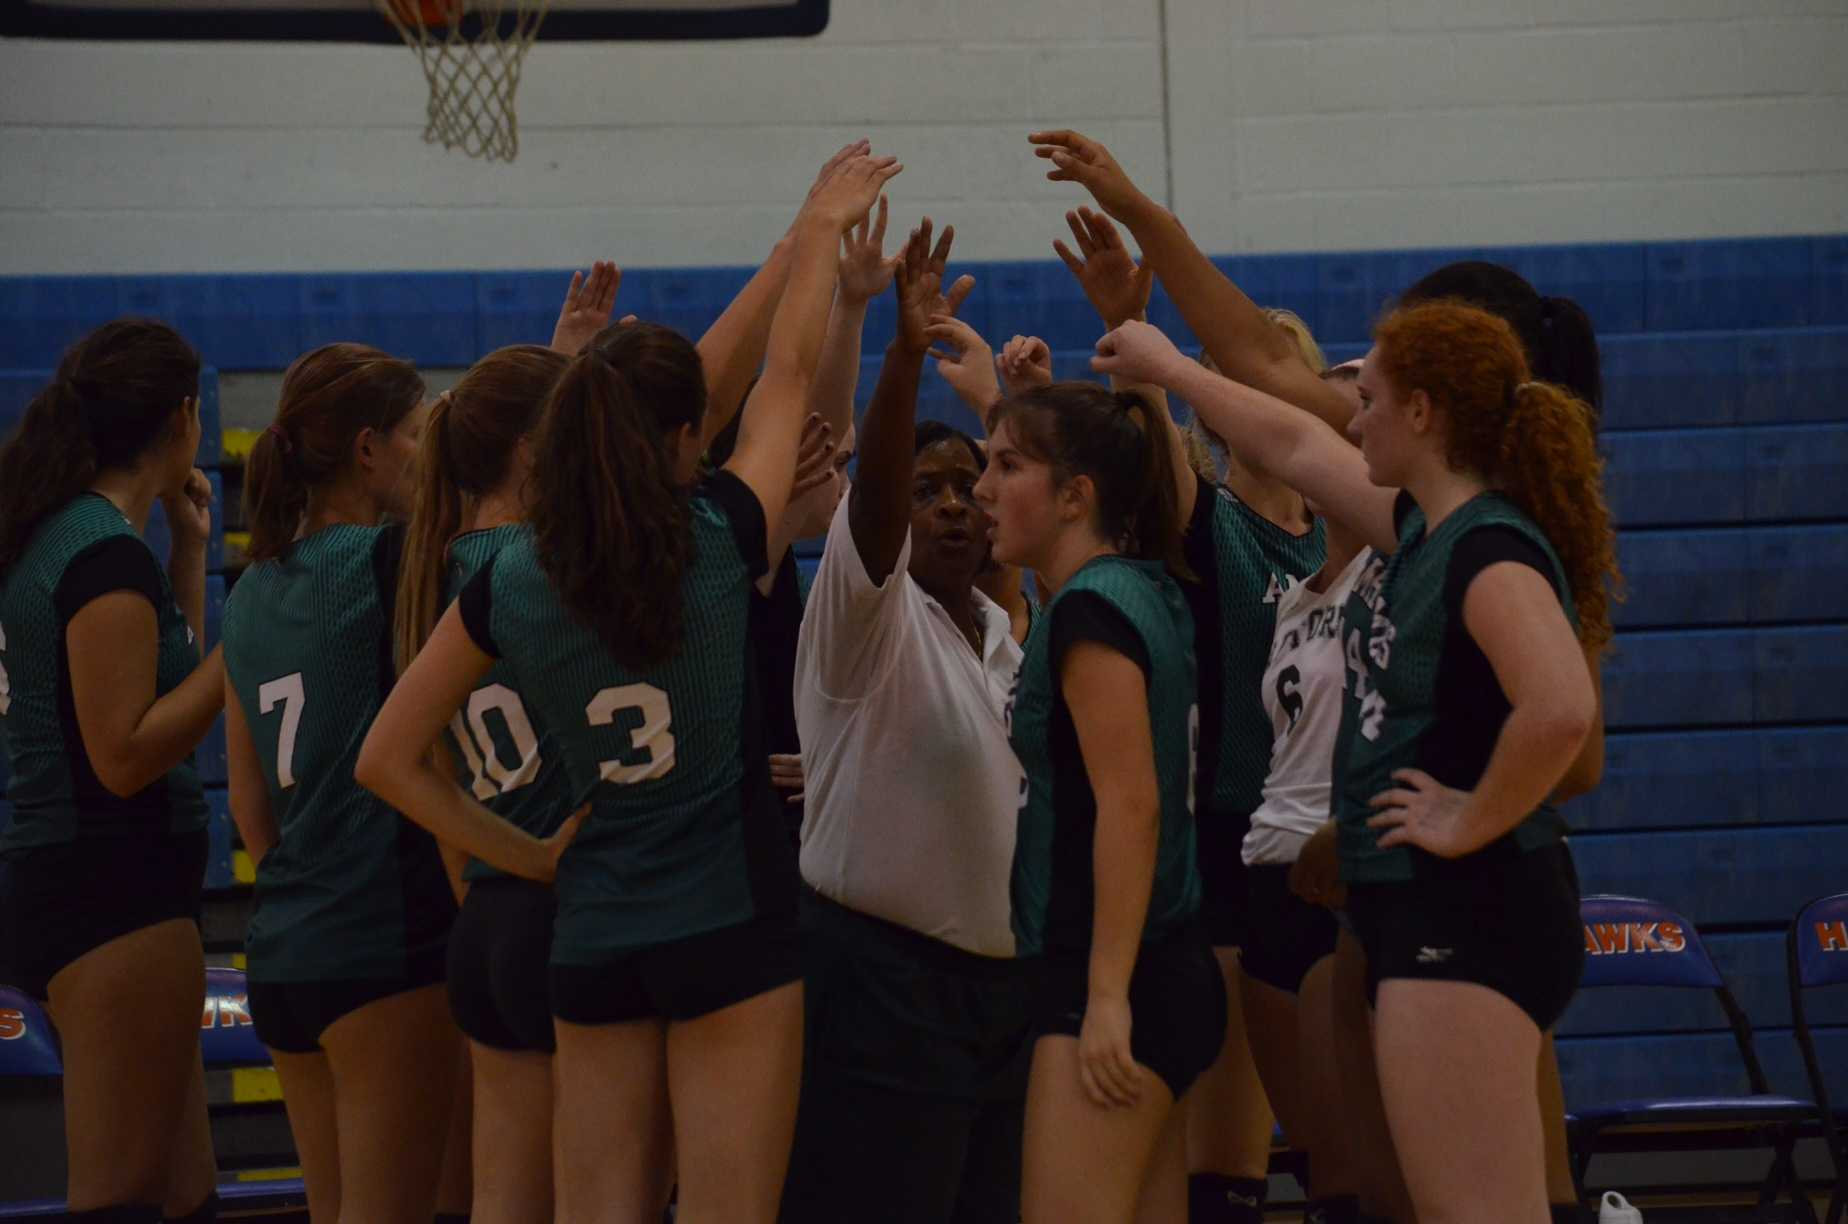 Raptor volleyball's fierce leader Coach Williams leads the team huddle before the win against the Hanahan Hawks.